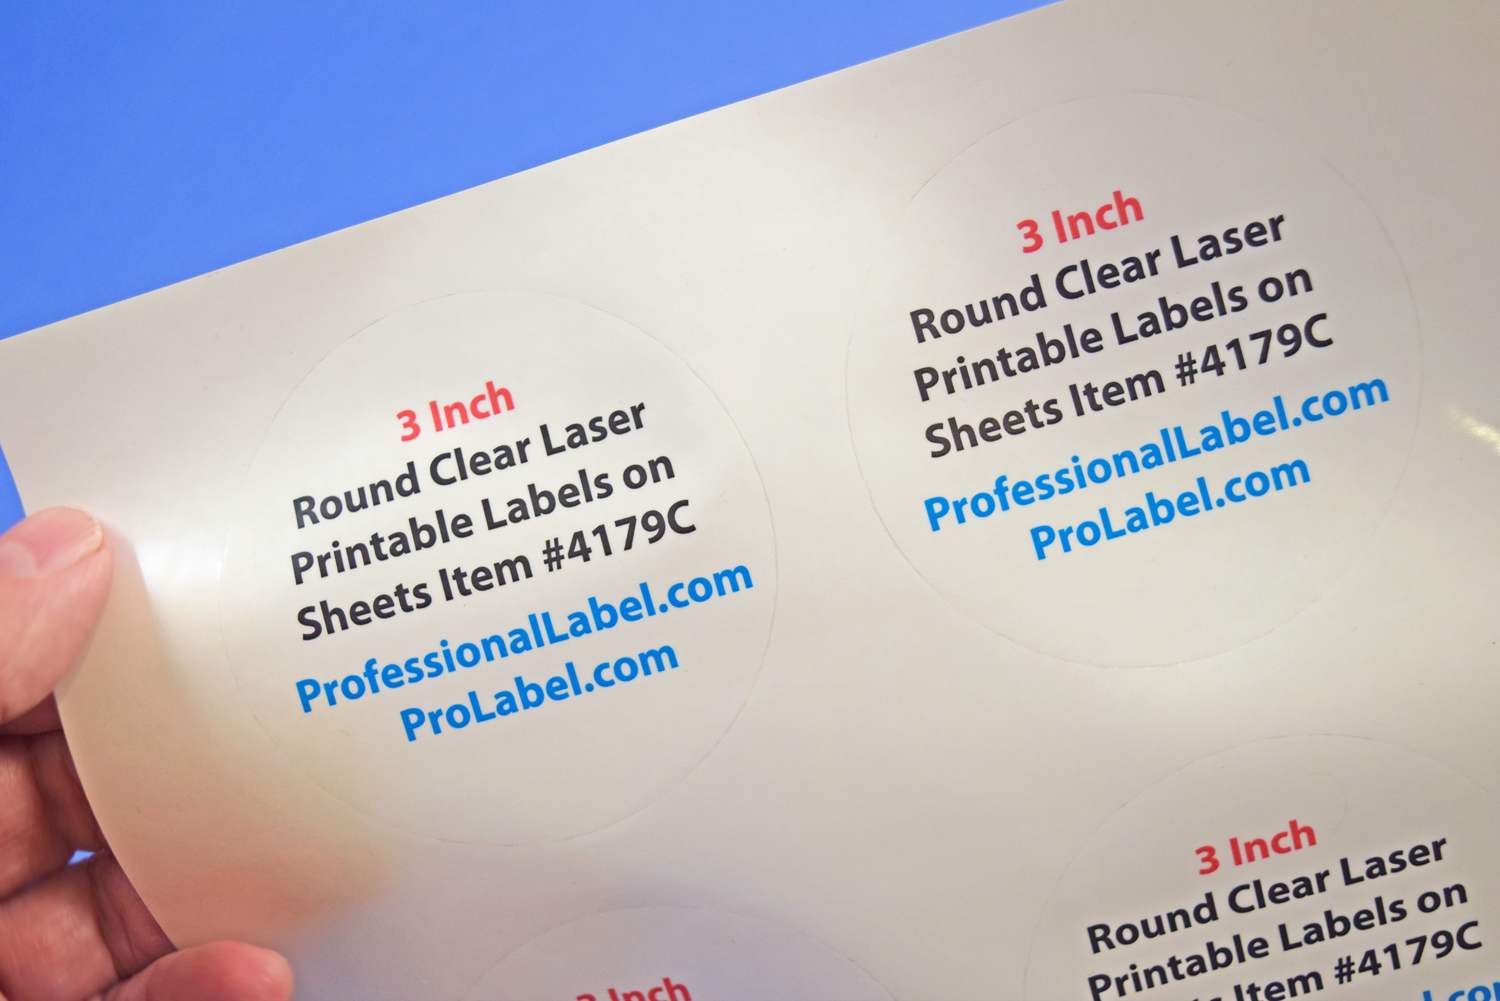 picture regarding Printable Clear Labels titled 3 inch Spherical Distinct Shiny Laser Printable Labels 50 Sheets 4179C